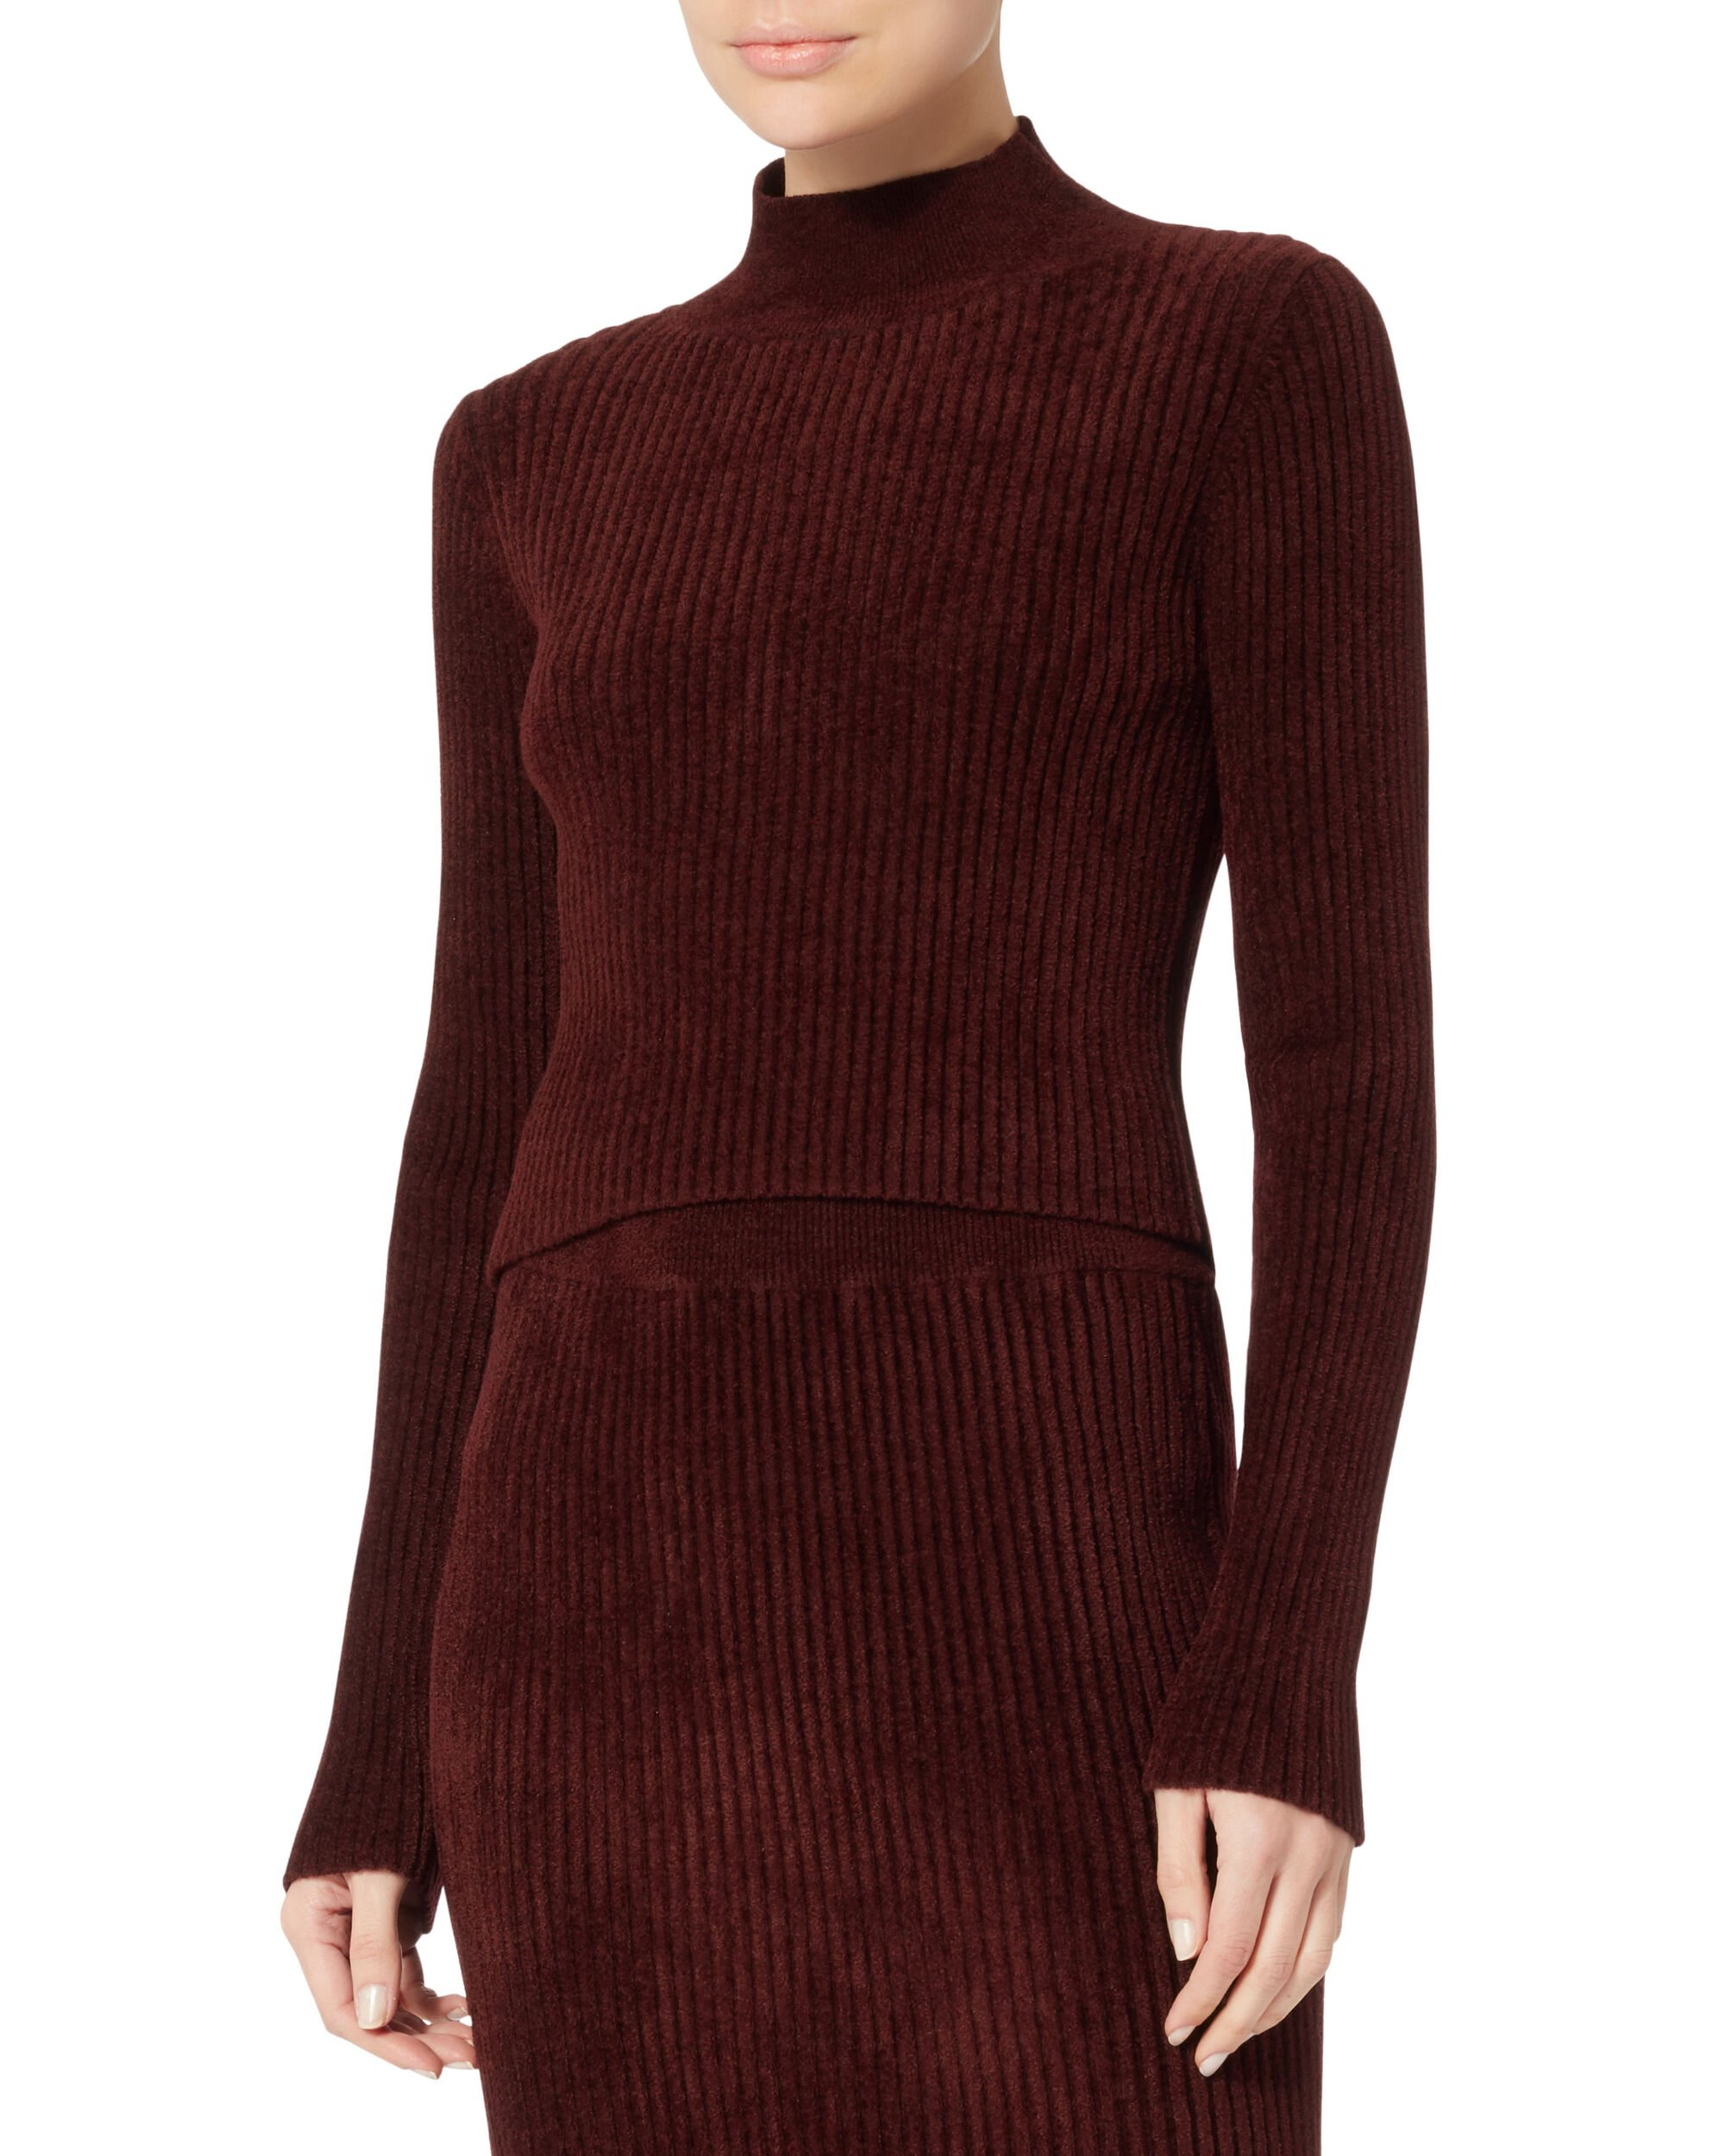 Cropped Ribbed Sweater, PURPLE-DRK, hi-res